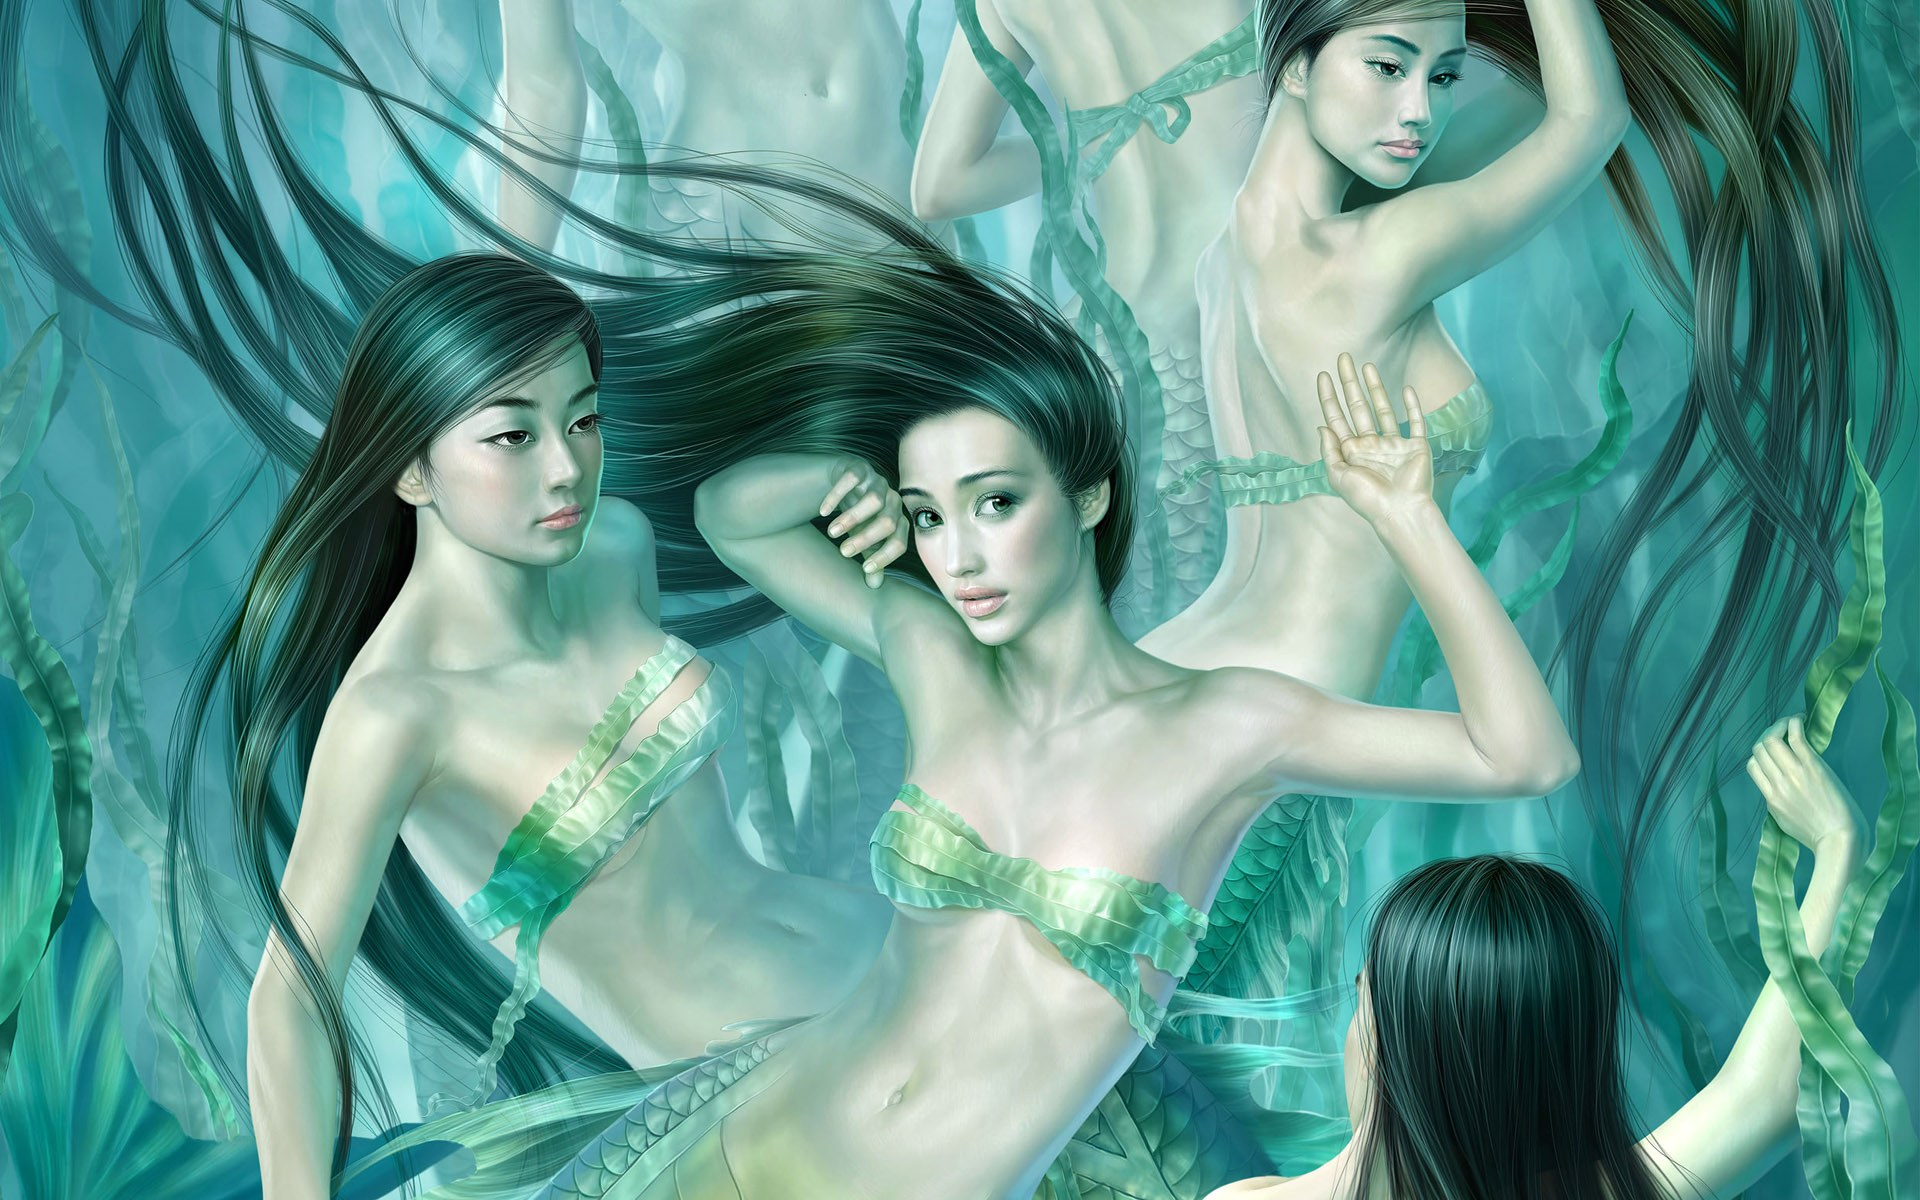 fantasy-girl---sirens-wallpapers_15019_1920x1200